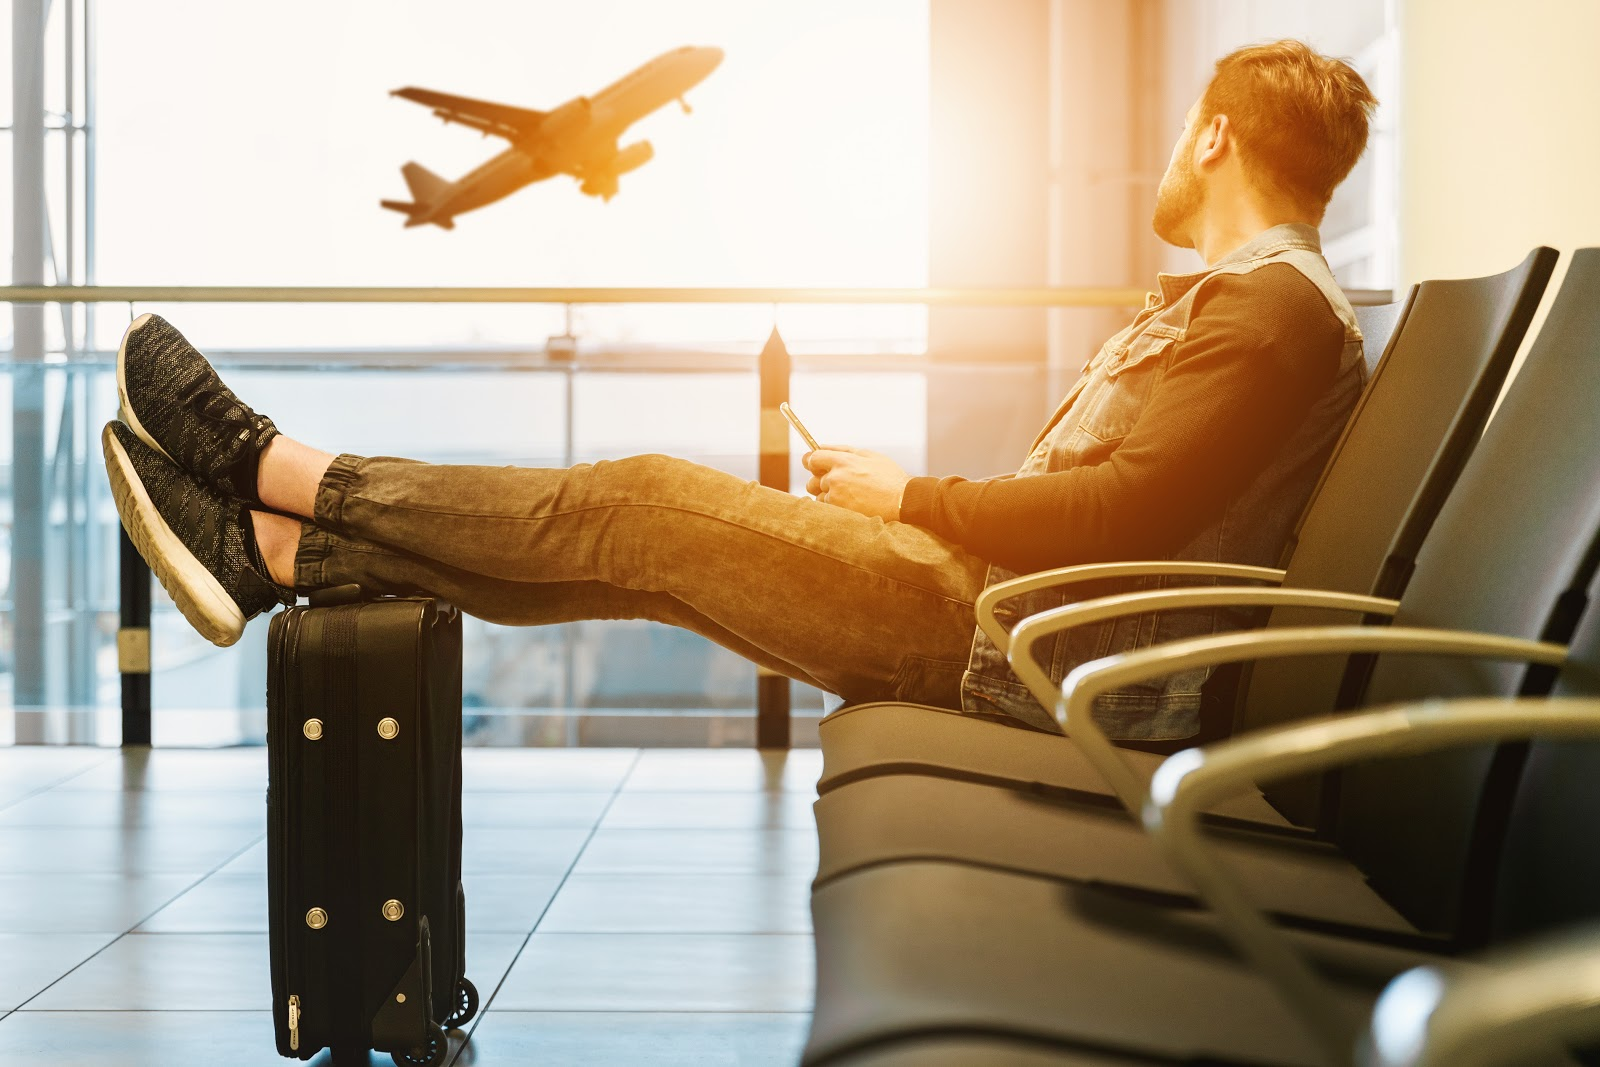 man, airport, travel, solo, alone, adventure, luggage